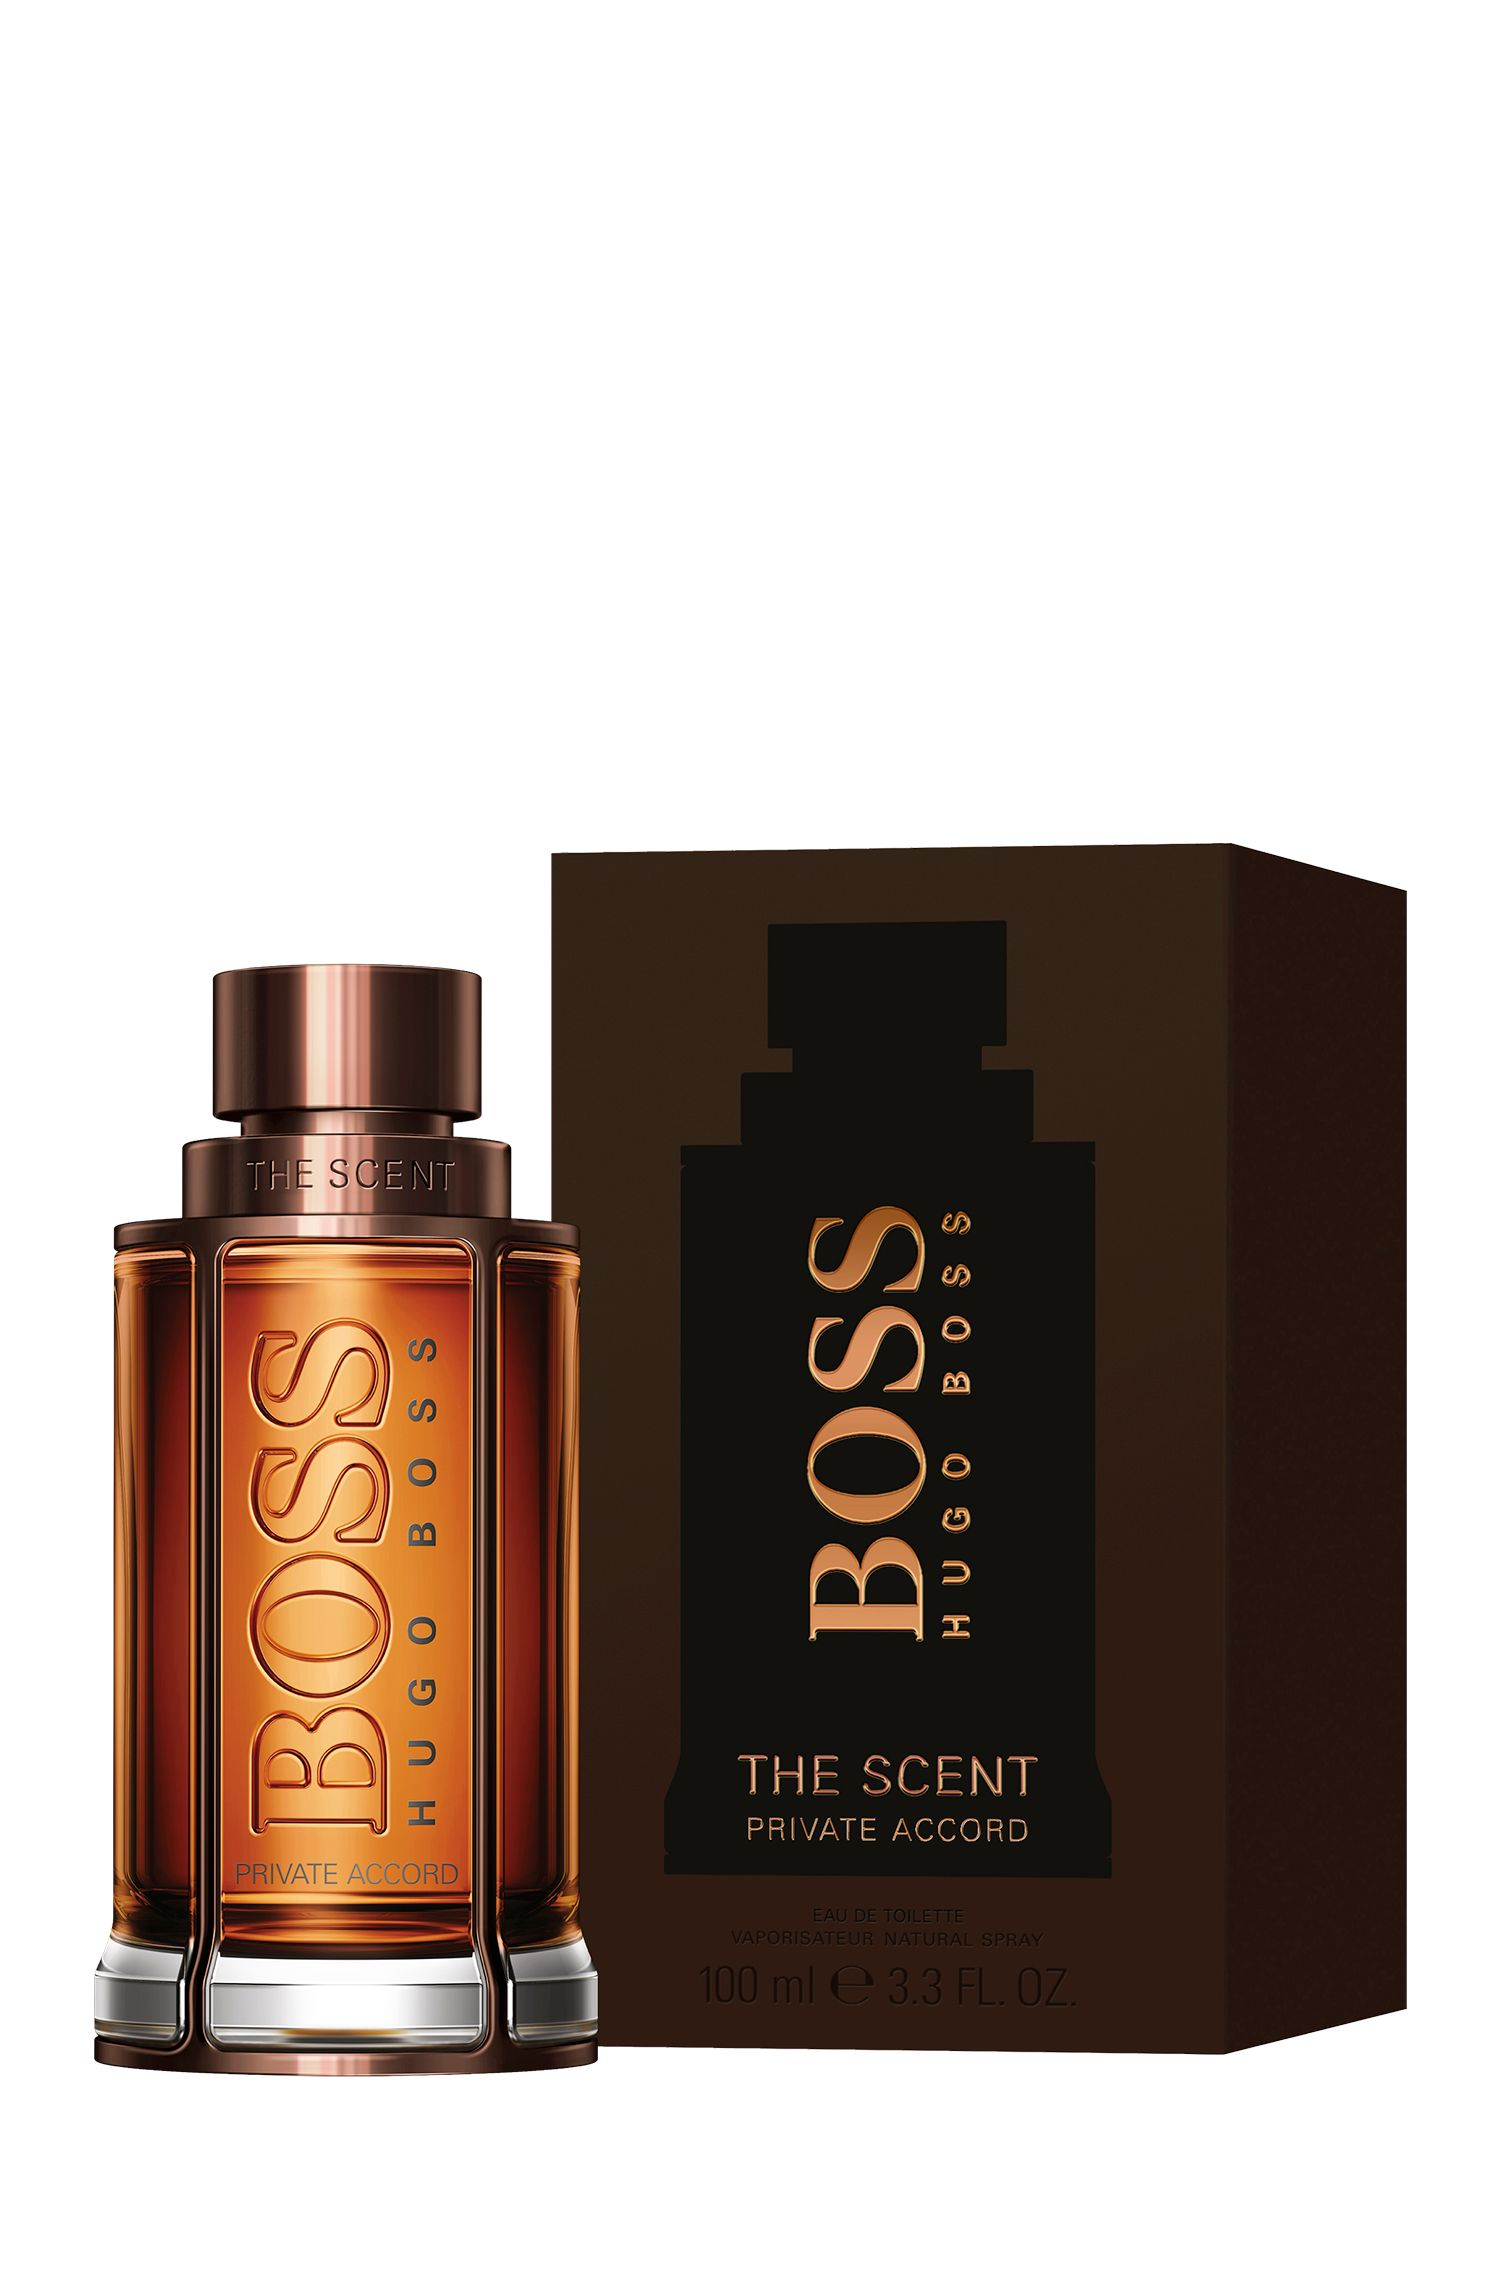 BOSS The Scent Private Accord for Him 100ml eau de toilette, Assorted-Pre-Pack